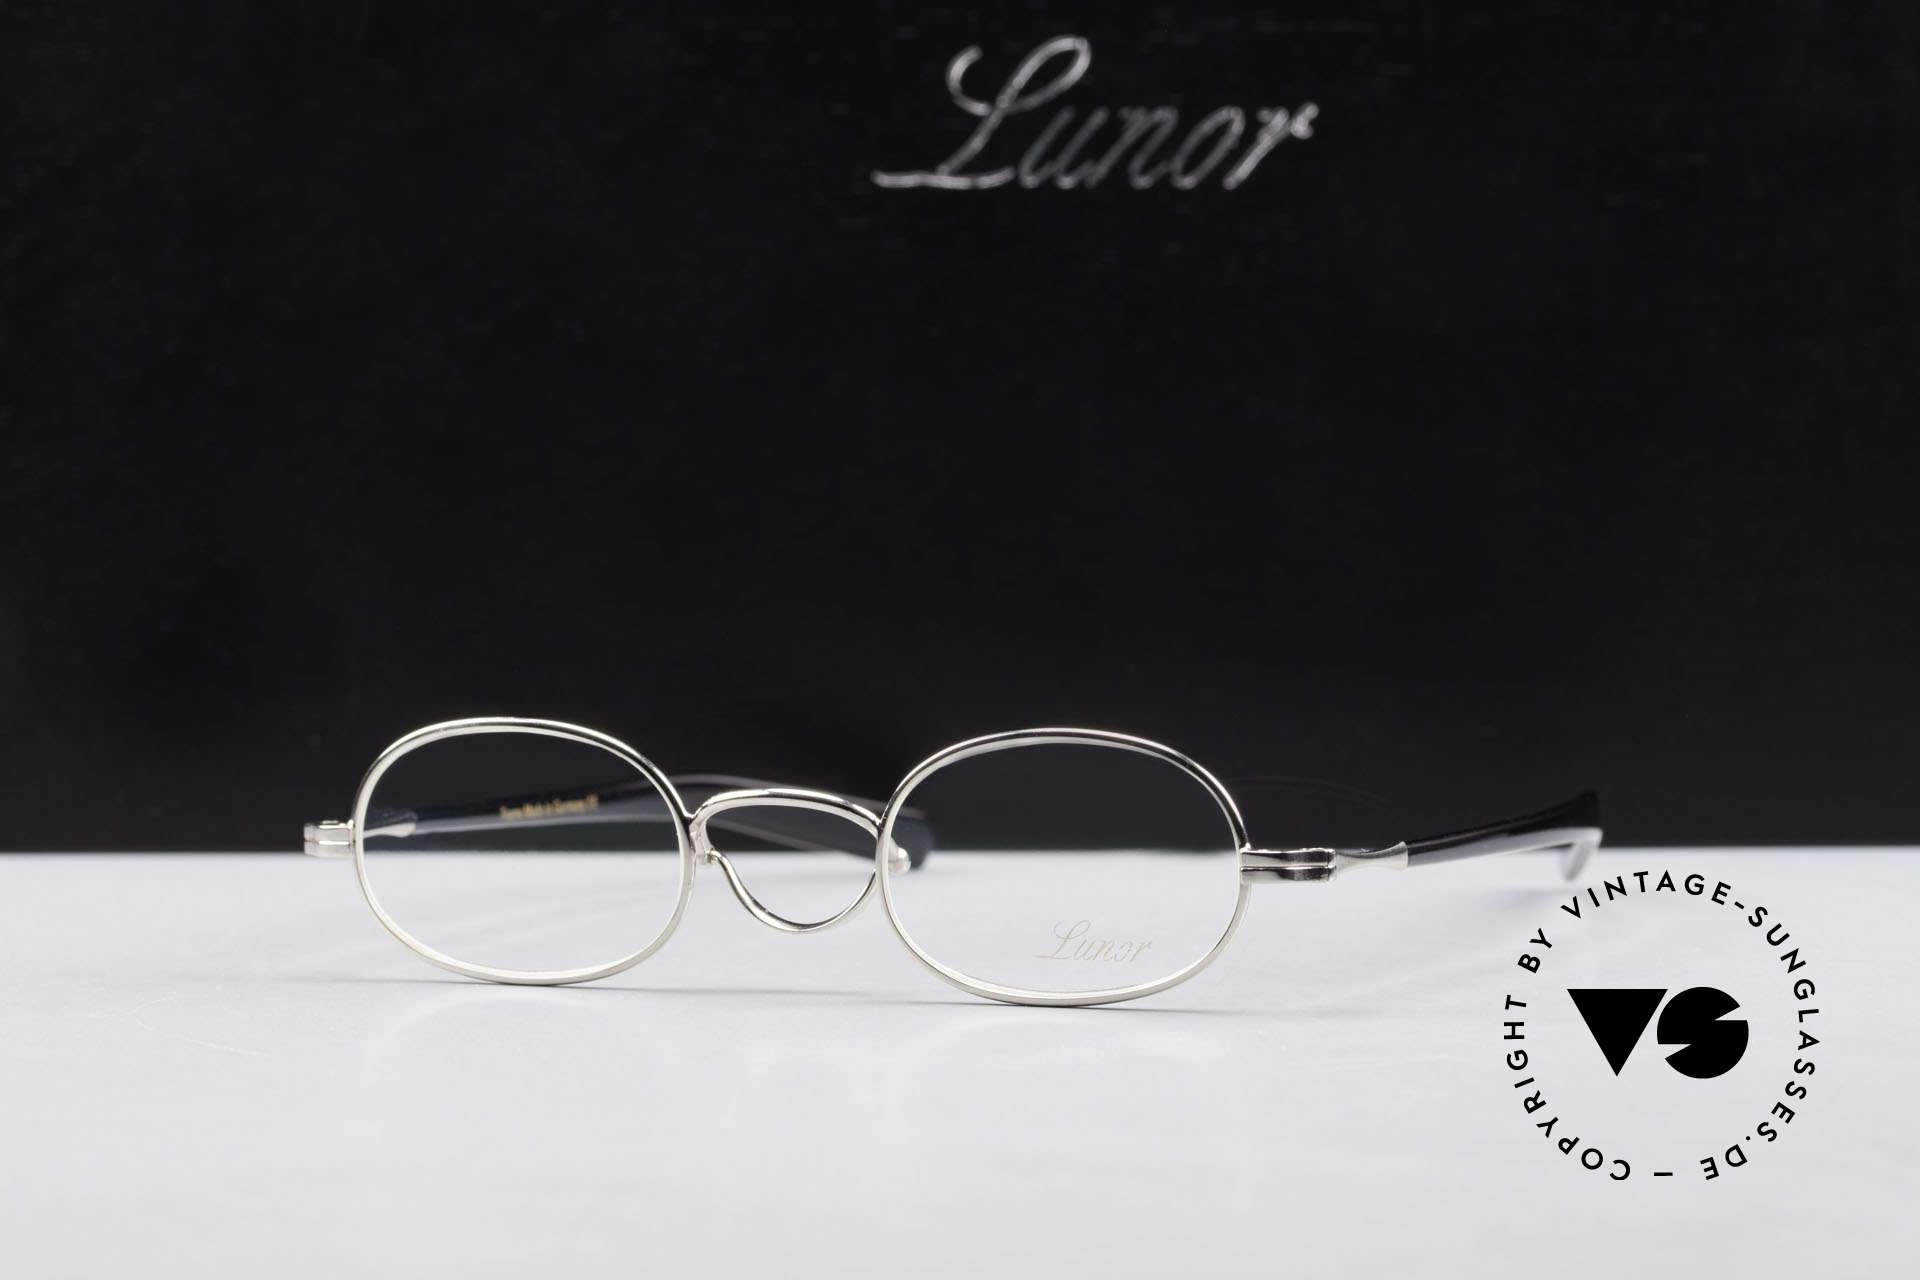 Lunor Swing A 36 Oval Swing Bridge Vintage Glasses, Size: extra small, Made for Men and Women